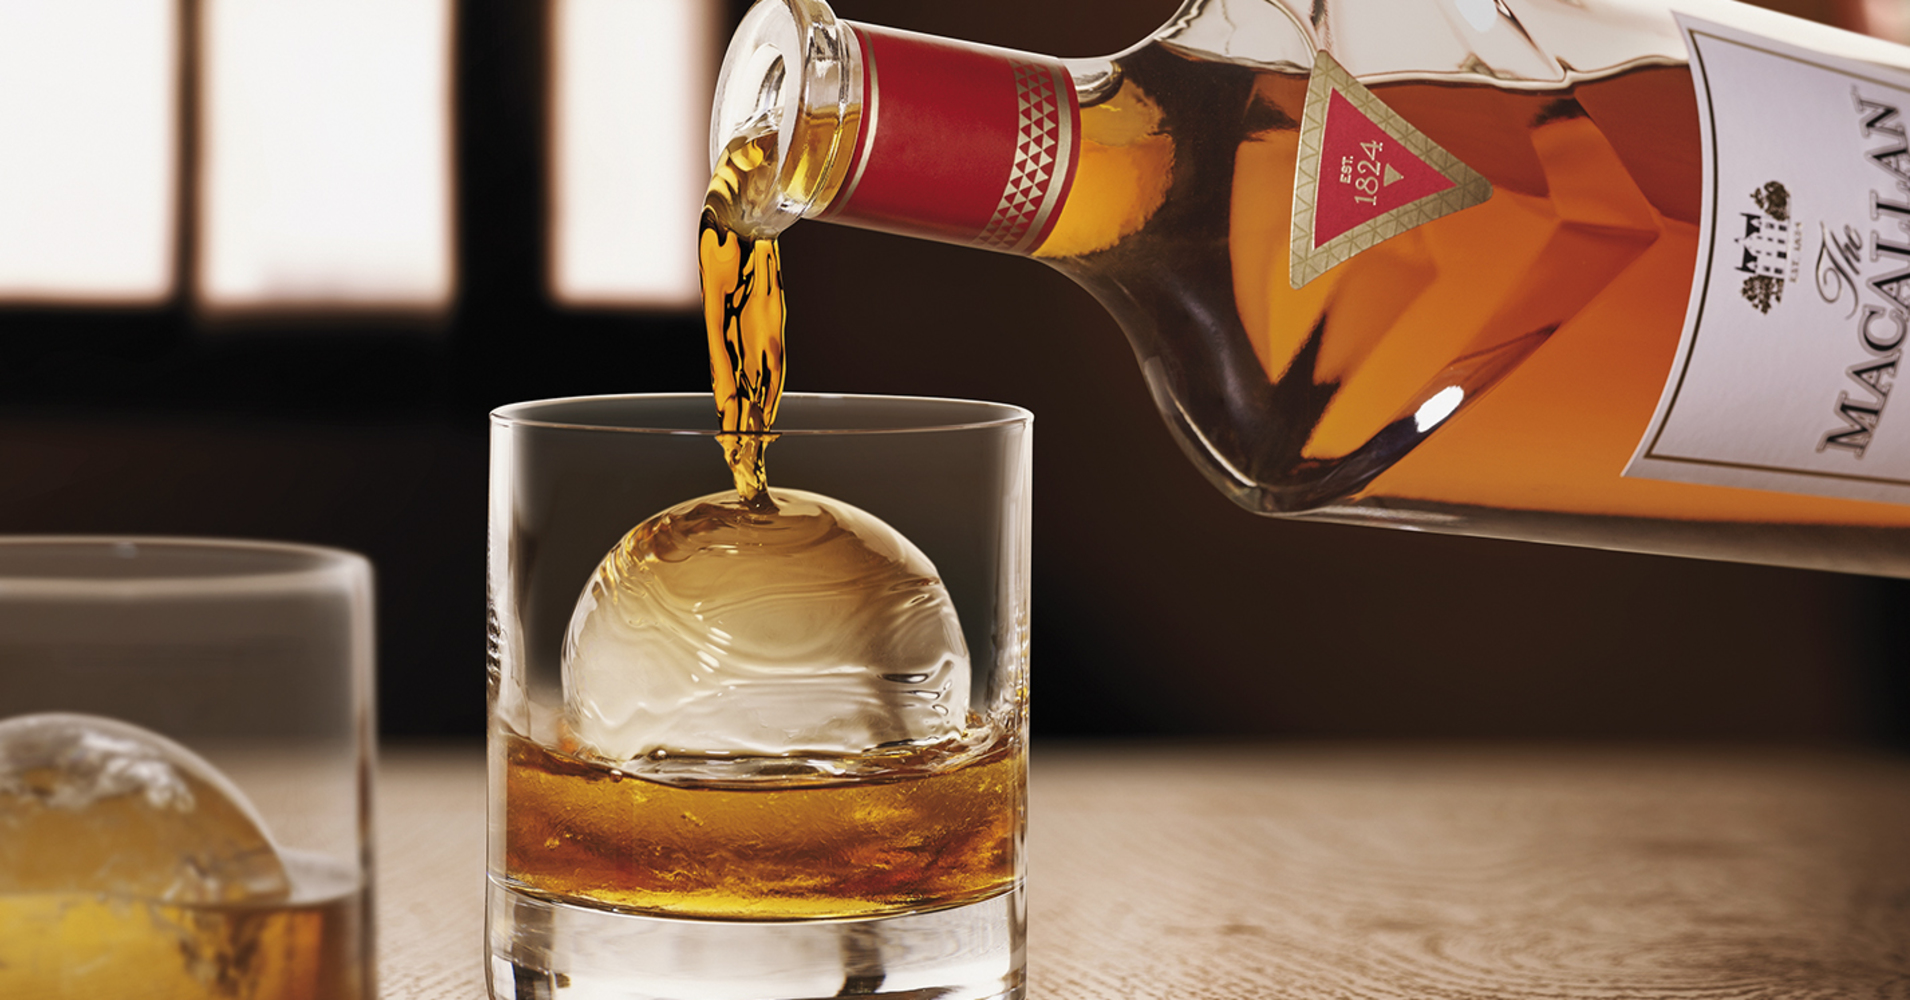 Forget The Wine: For This Pairing Dinner, Rare Macallan Whisky Is On The Menu photo